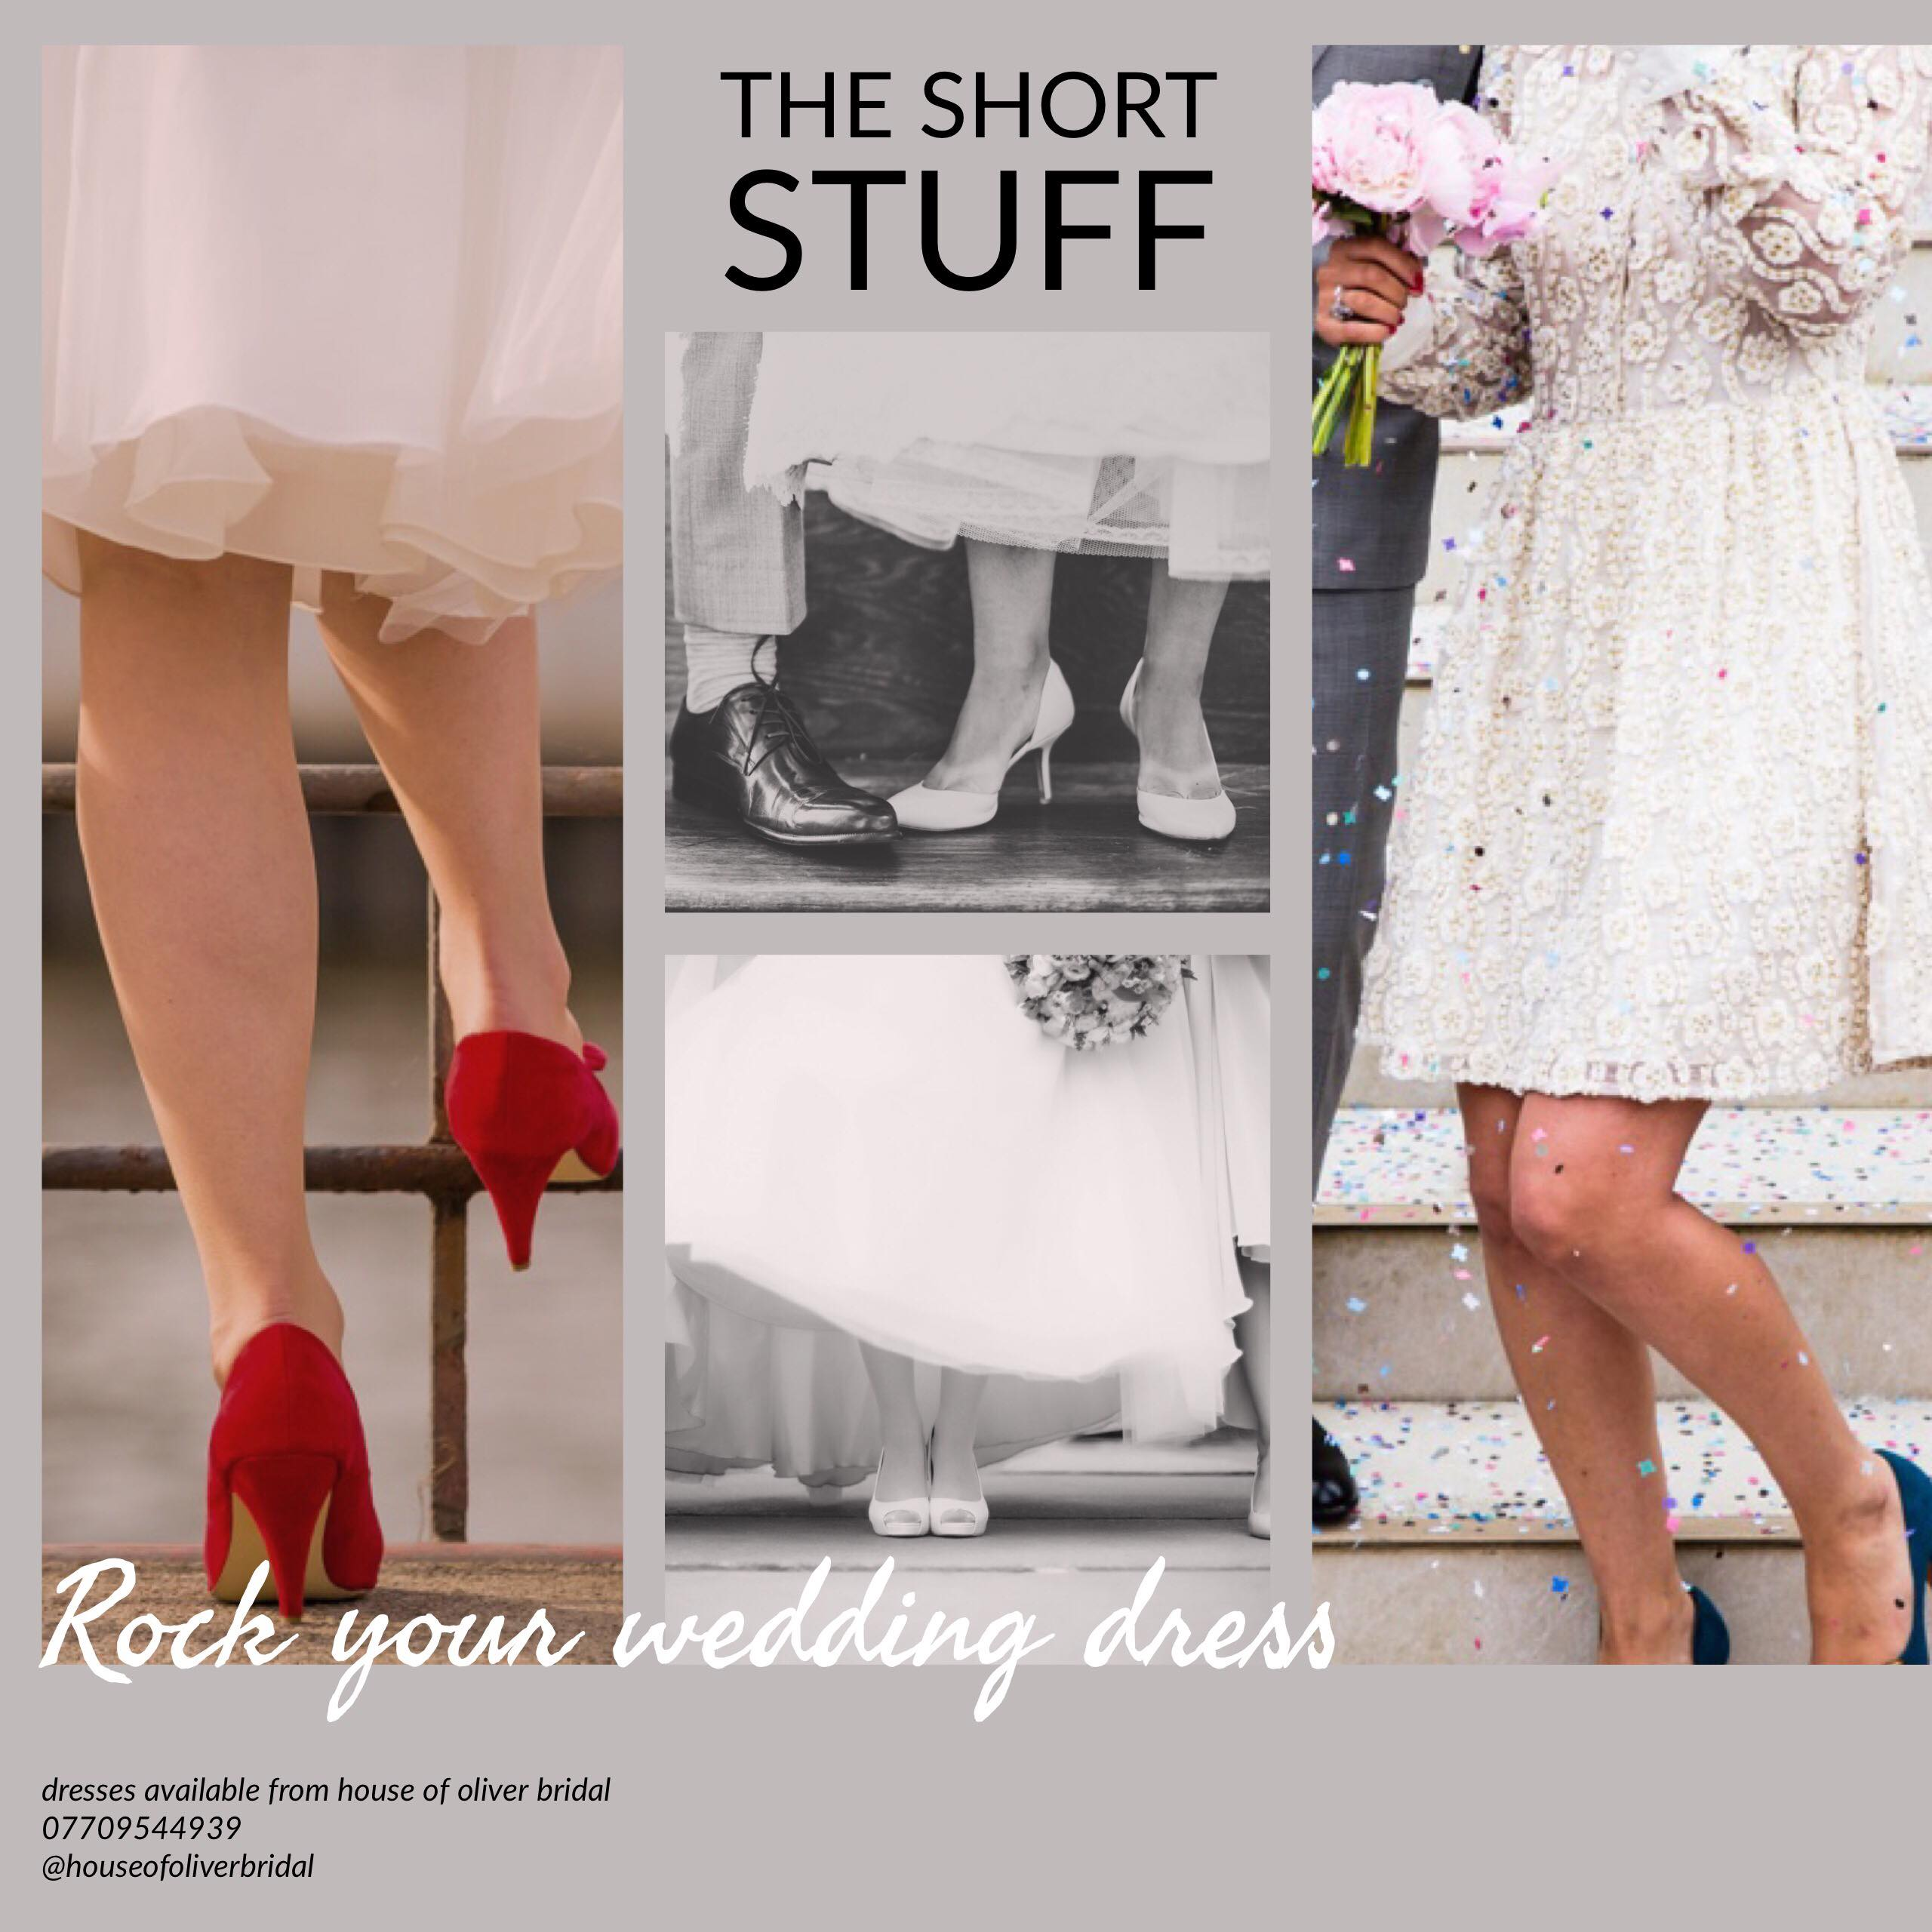 73d313 ee67d213ec8c43c7b5f6ccca9240bf34mv2 d 2560 2560 s 4 2 - Different ways to Rock your Wedding Dress